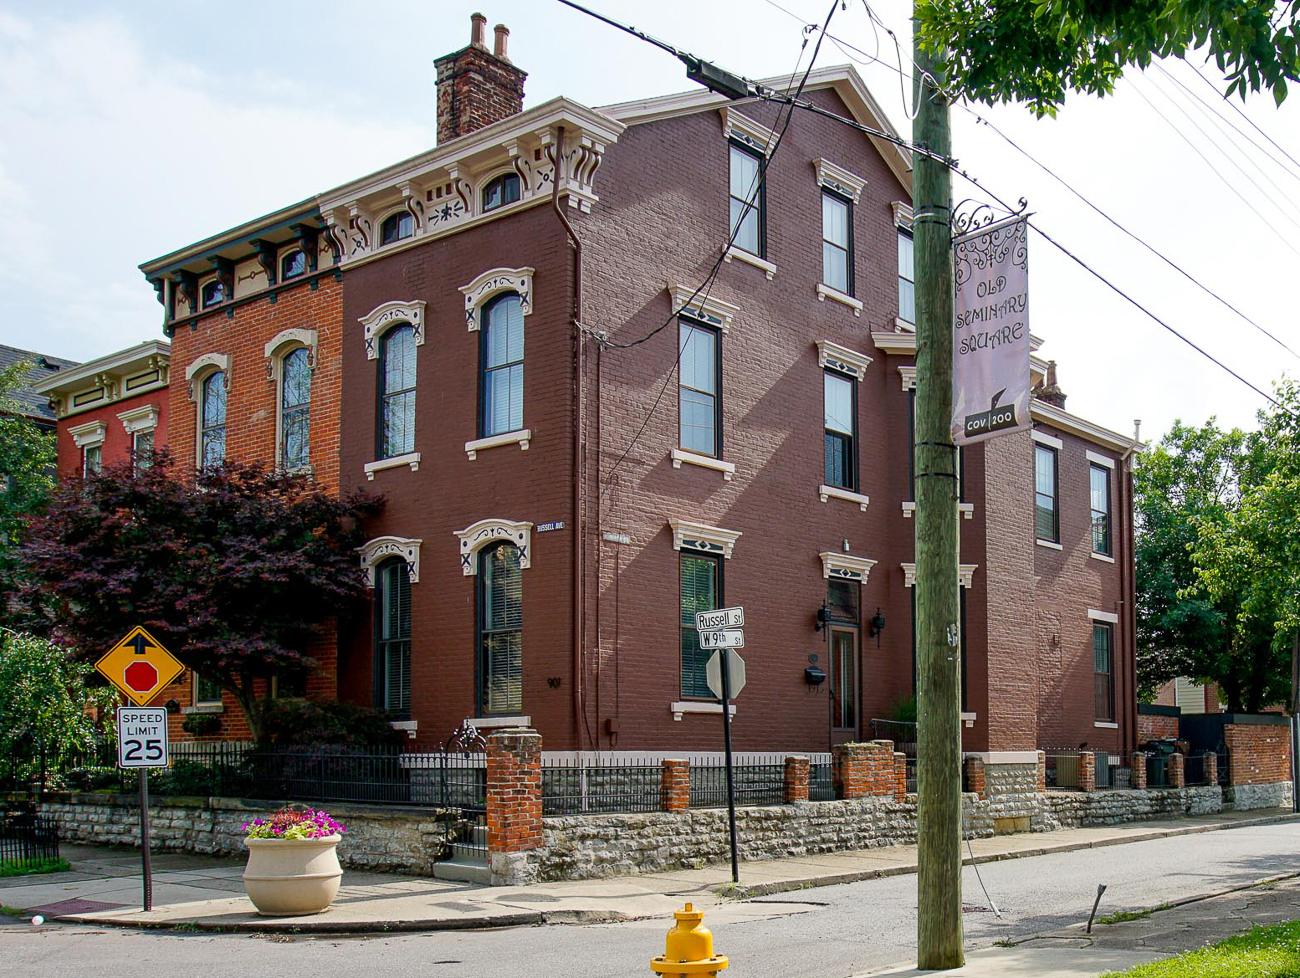 <p>Built circa 1883, 901 Russell Street is a 4-bed, 2.5-bath house that sits within the historic district of Old Seminary Square. While it might have 19th-century bones, it's been updated to accommodate 21st-century tastes. Its kitchen features Viking appliances, the outdoor space has been renovated, and it's freshly (and professionally) painted among other updates. The house is equally close to both Mainstrasse and the Madison Avenue entertainment district, and it's up for sale with a price tag of $374,900. / Image: Austin Dunbar // Published: 6.27.19<br></p>